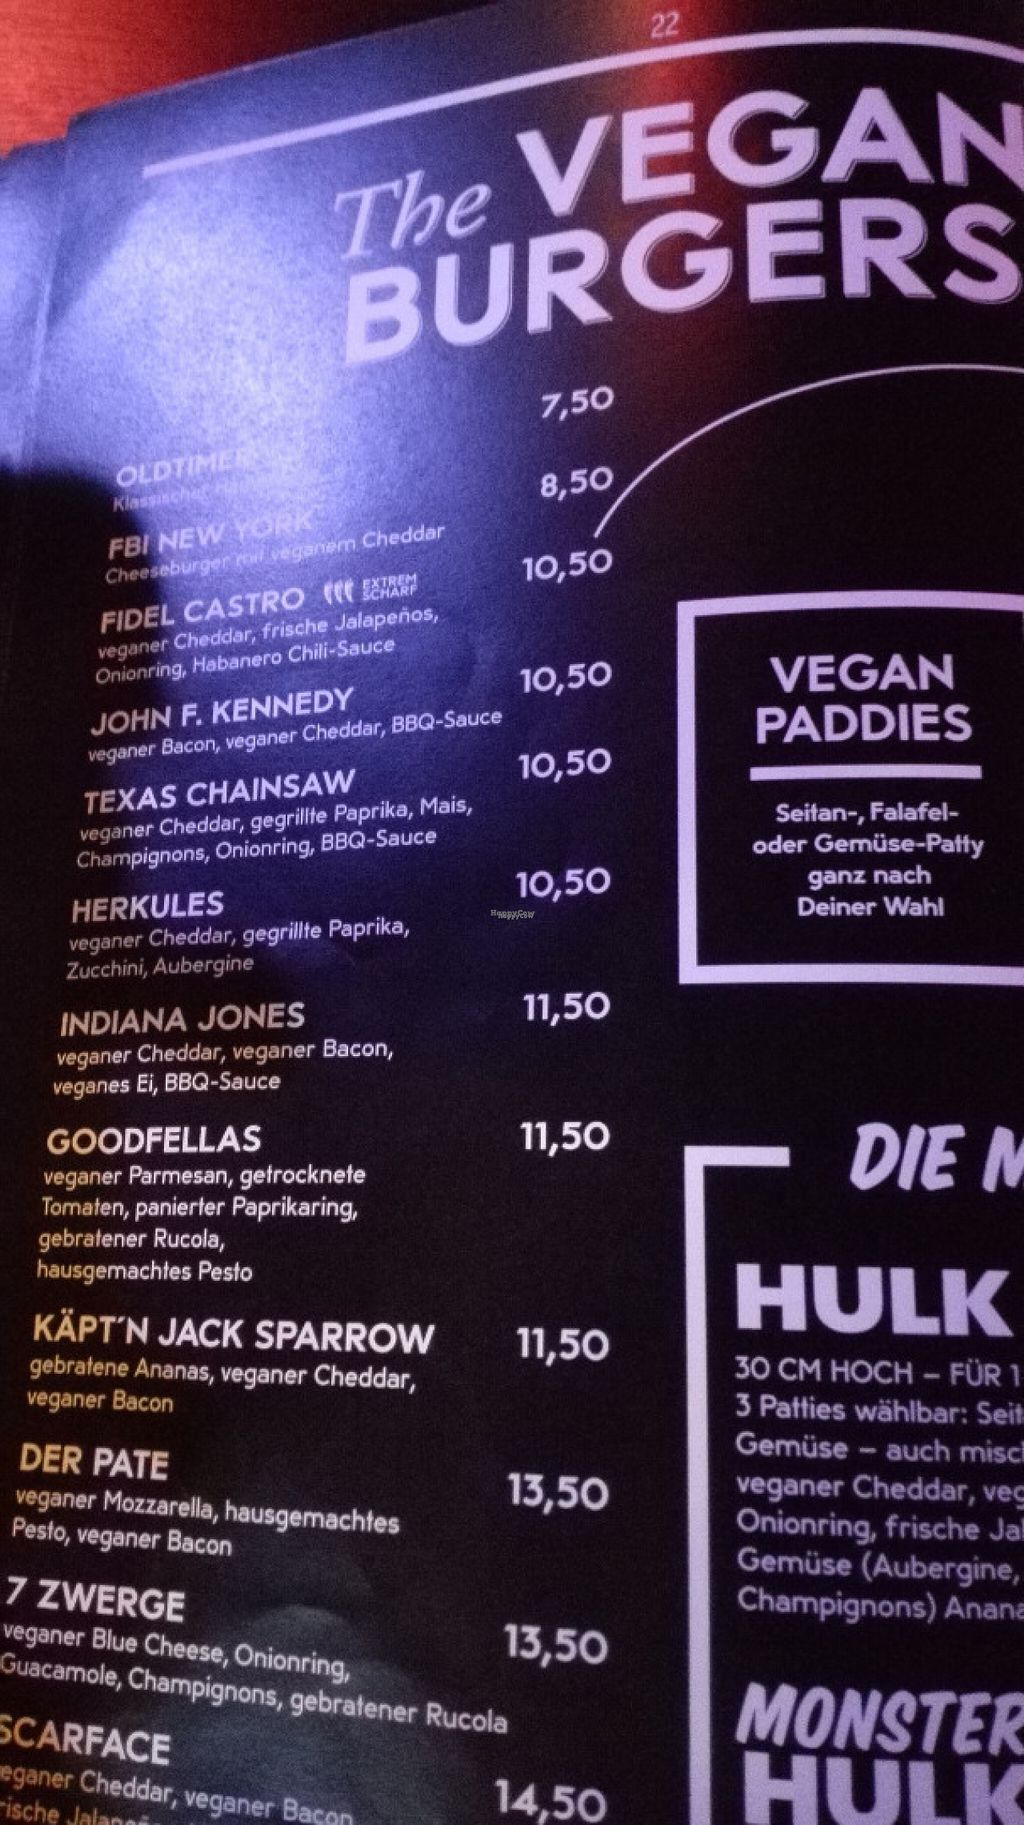 """Photo of Lily Burger  by <a href=""""/members/profile/VeganVenturer"""">VeganVenturer</a> <br/>In addition to the burgers here they also offer vegan steaks <br/> November 6, 2016  - <a href='/contact/abuse/image/45852/186877'>Report</a>"""